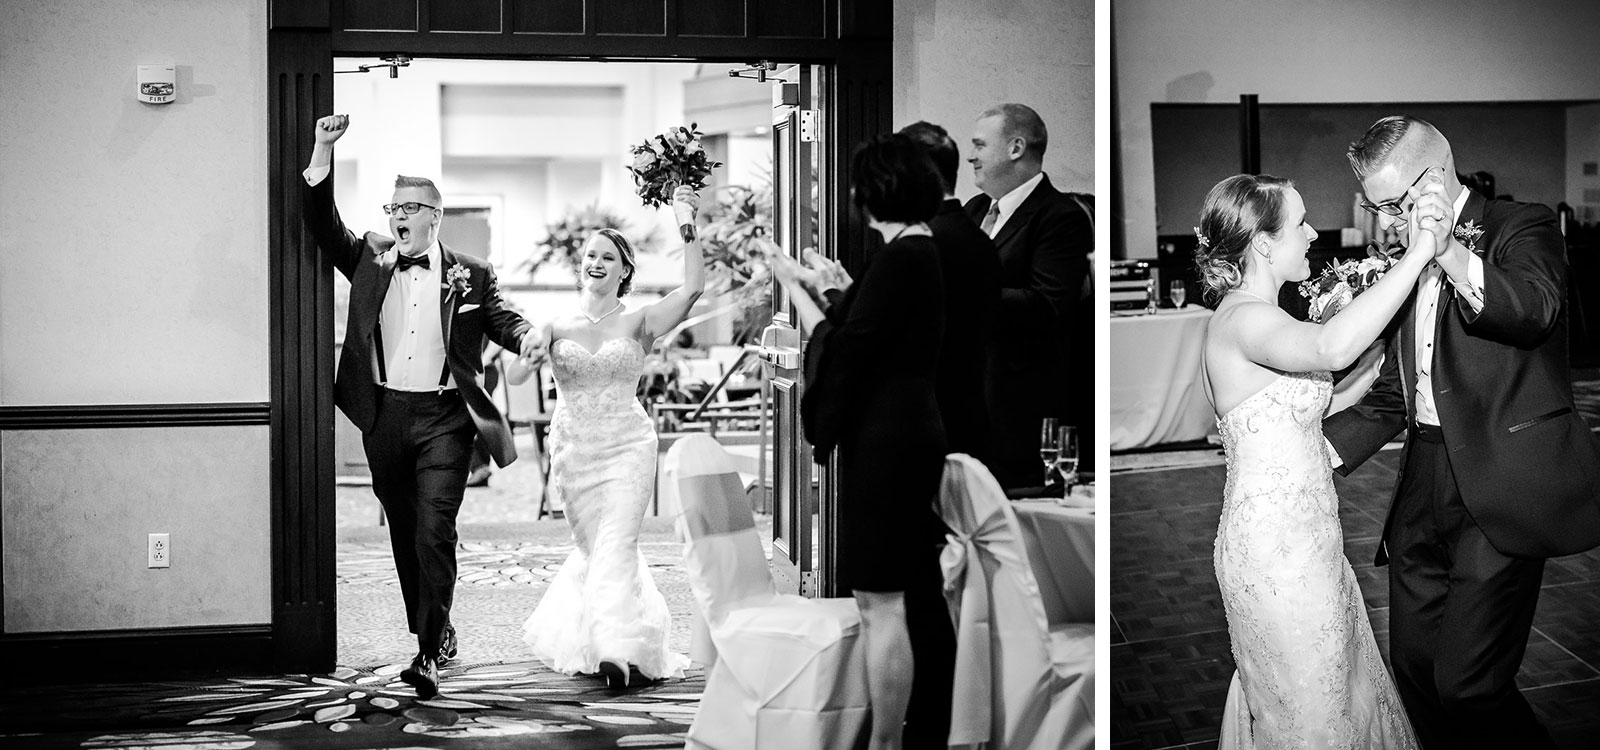 Eric_and_Christy_Photography_Blog_Wedding_Erica_Mike-67-68